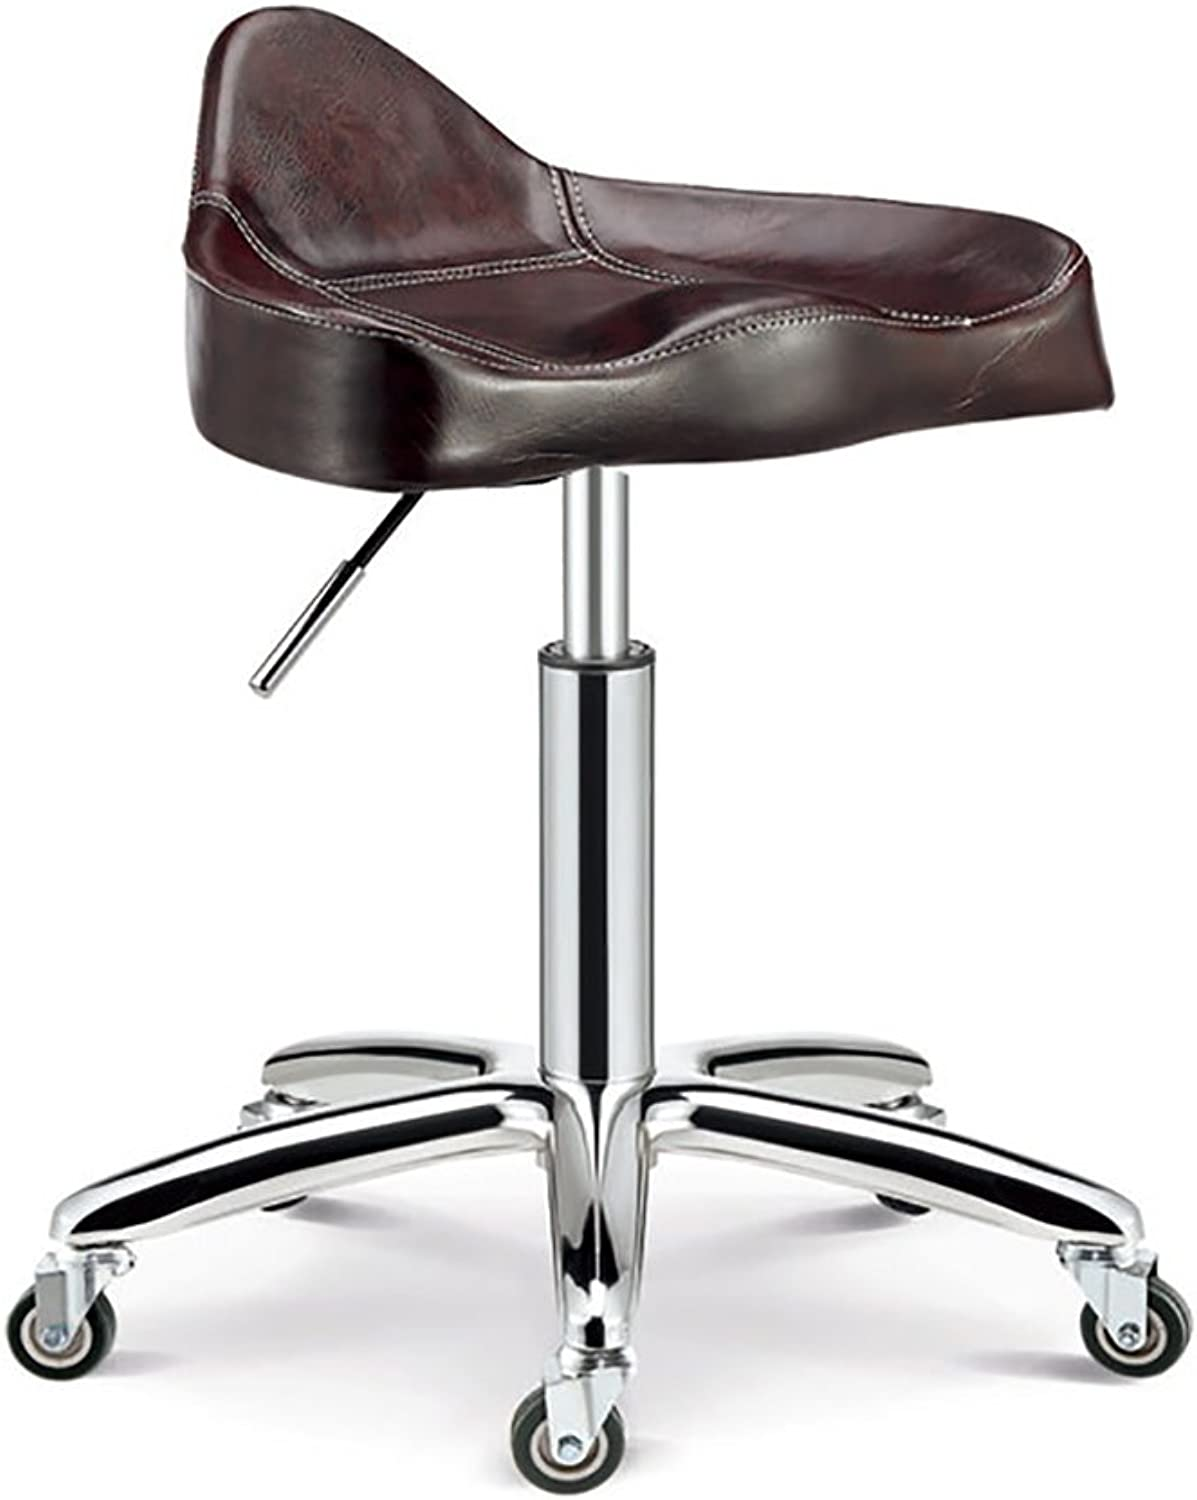 Nationwel@ Swivel Chair Beauty Roller Stool,Adjustable Height, with Wheels, 360 Degree redation, 10 cm Cushion, 4 Colours (color   Maroon, Size   44-56cm)